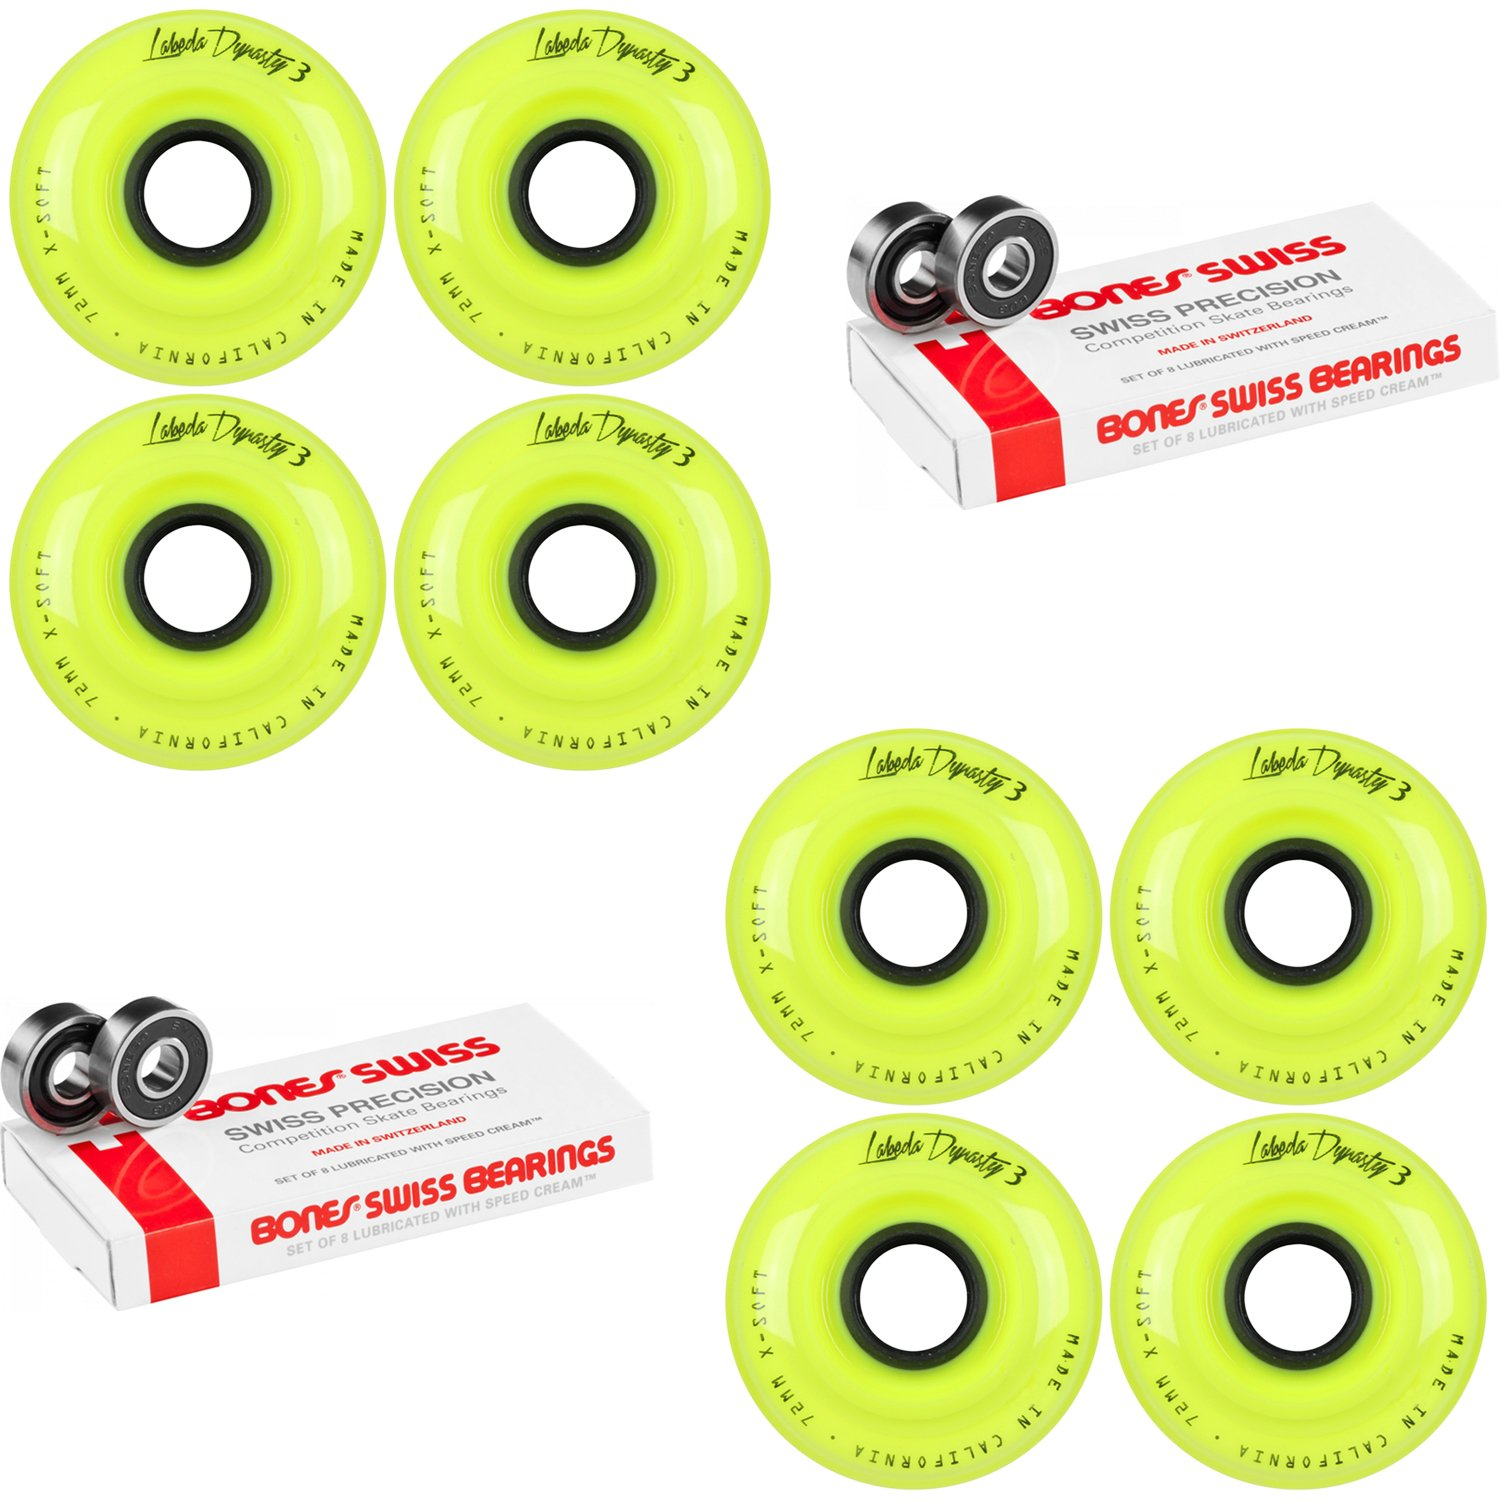 Labeda WHEELS Inline Hockey DYNASTY 3 72mm X-SOFT Yellow 8-Pack Bones Swiss by Labeda